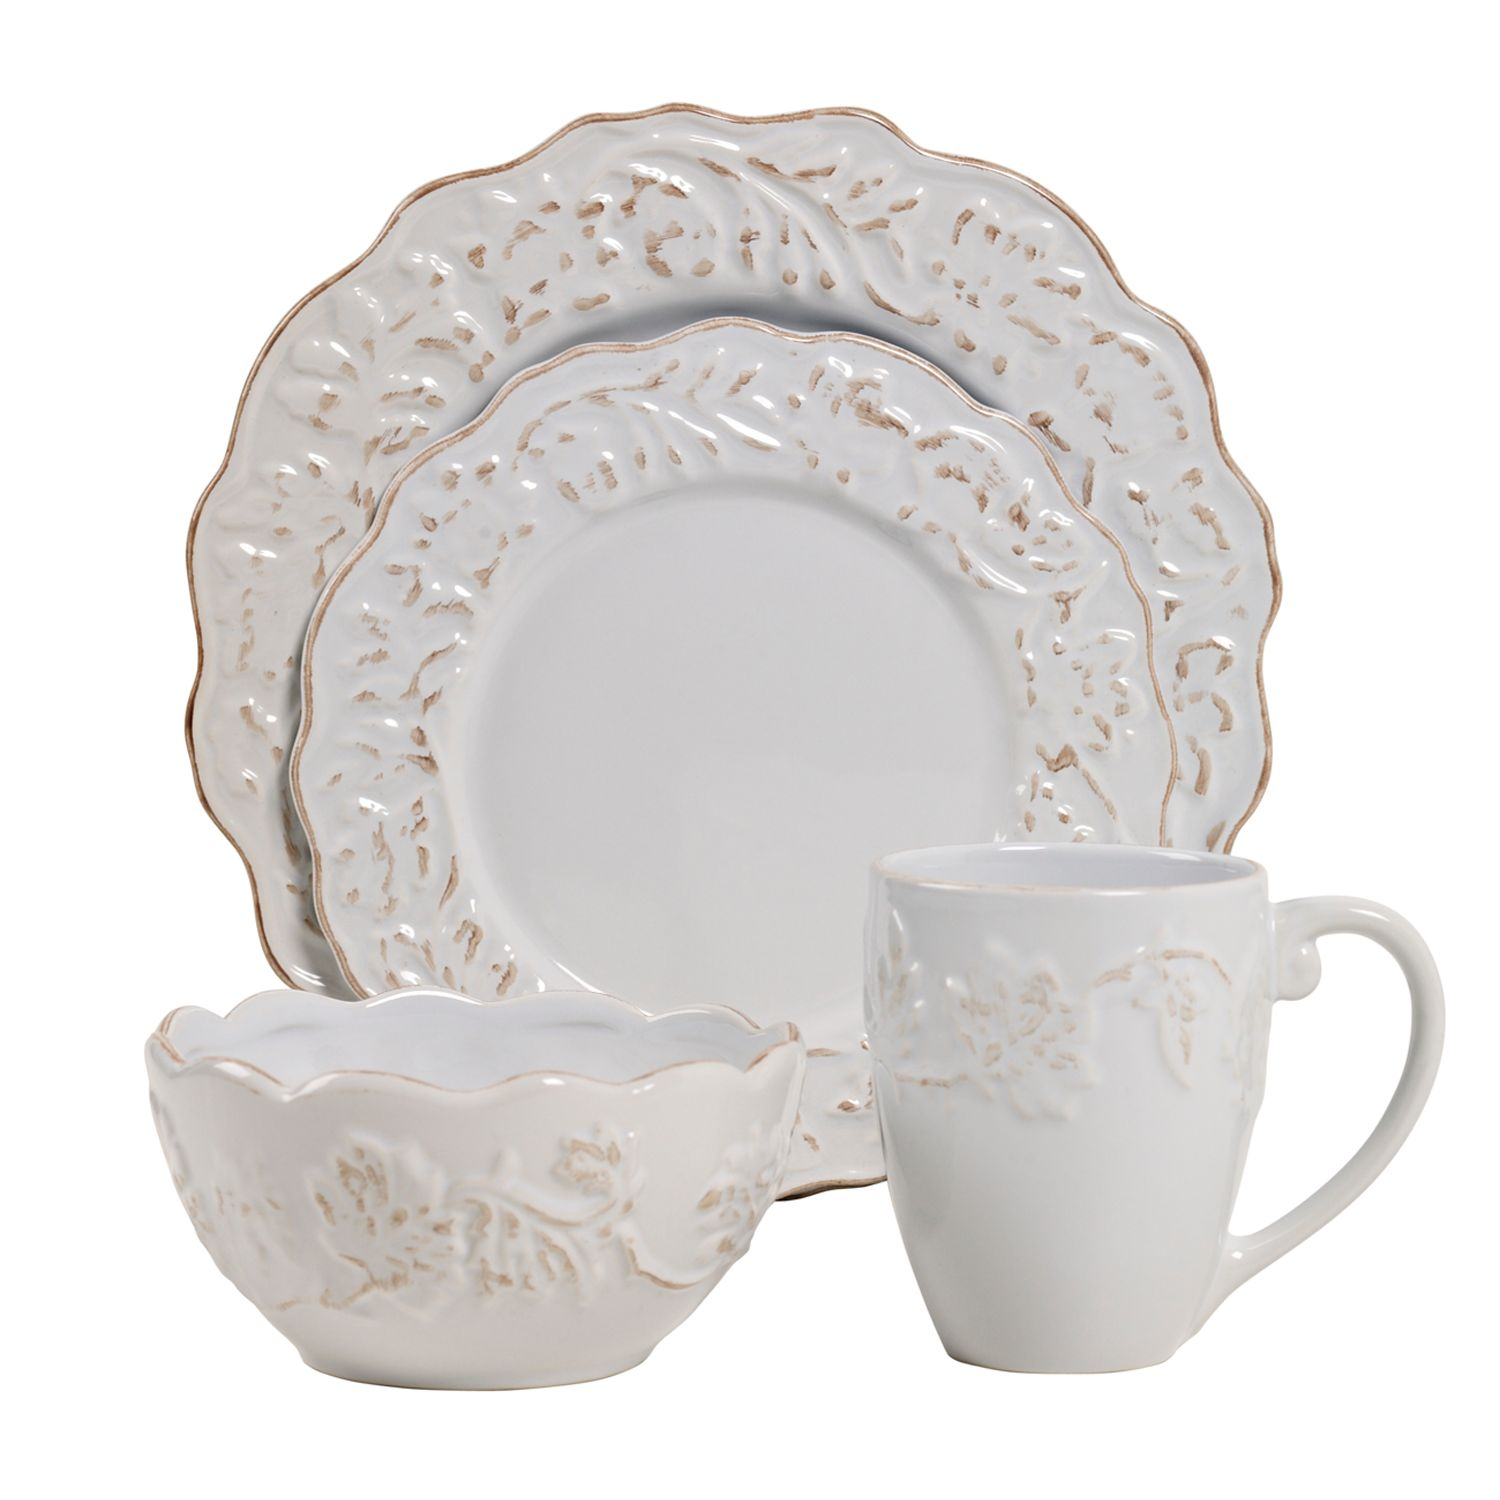 High Quality Product Name Tabletops Gallery Charlotte 16 Pc. Dinnerware Set